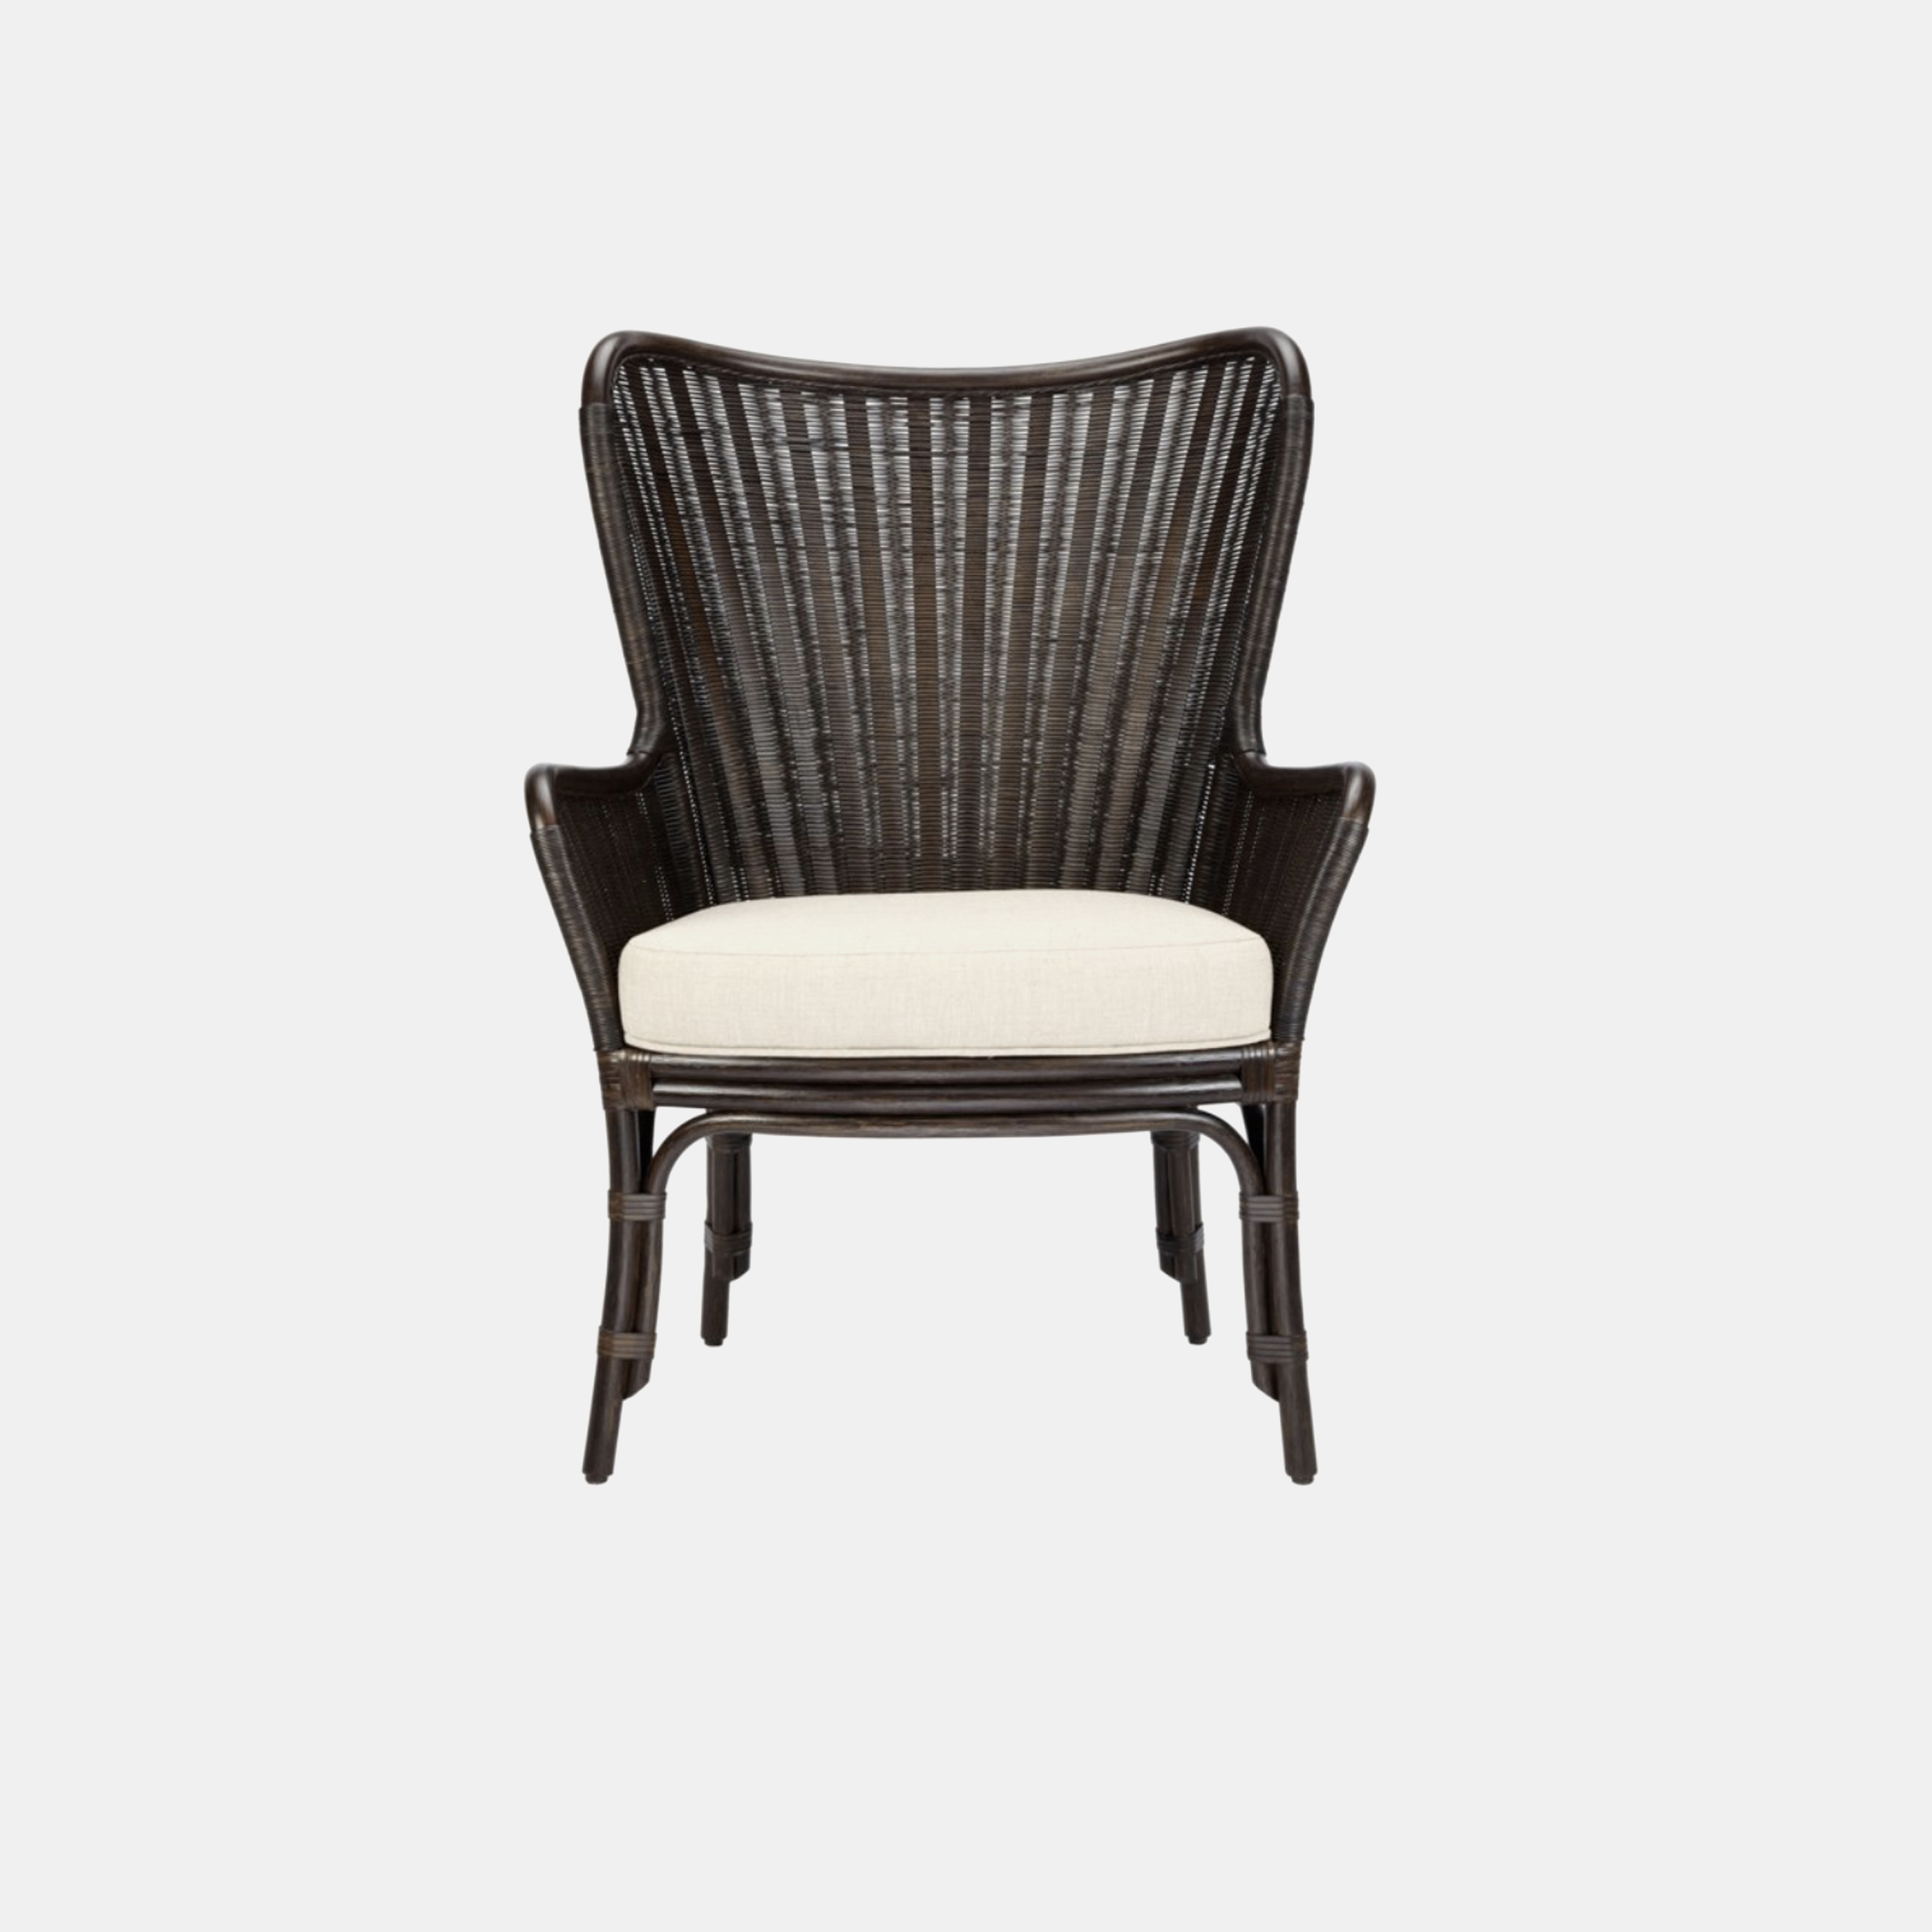 Sheridan Wing Chair  30'' x 27.5'' x 40'' Available in clove (shown), nutmeg, and white. SKU0011SLM